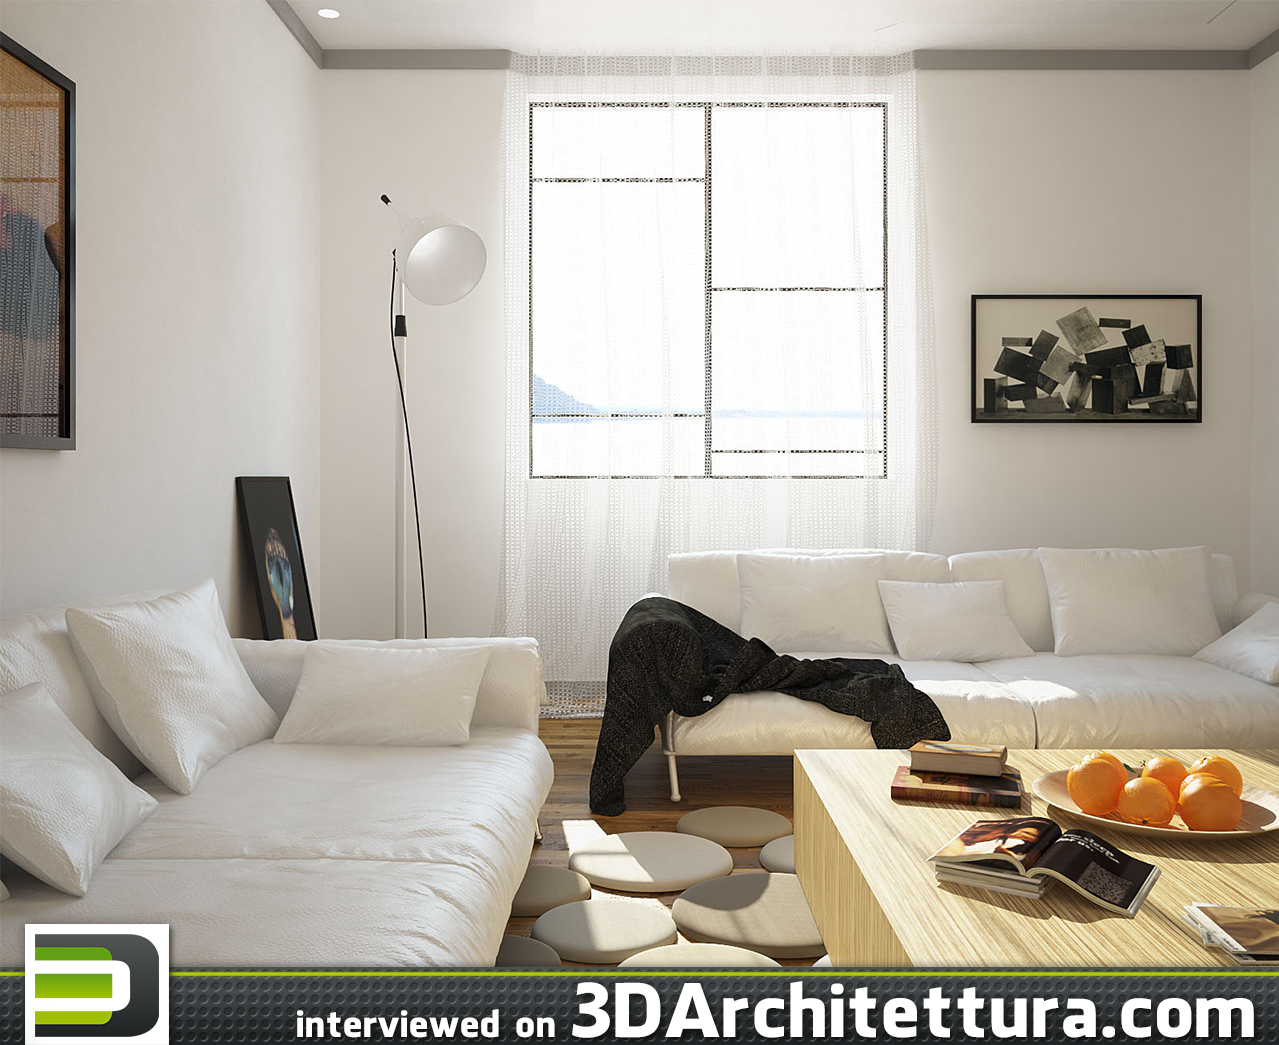 Alessandro Berti interviewed on 3D Architettura: render, 3d, design, architecture, CG